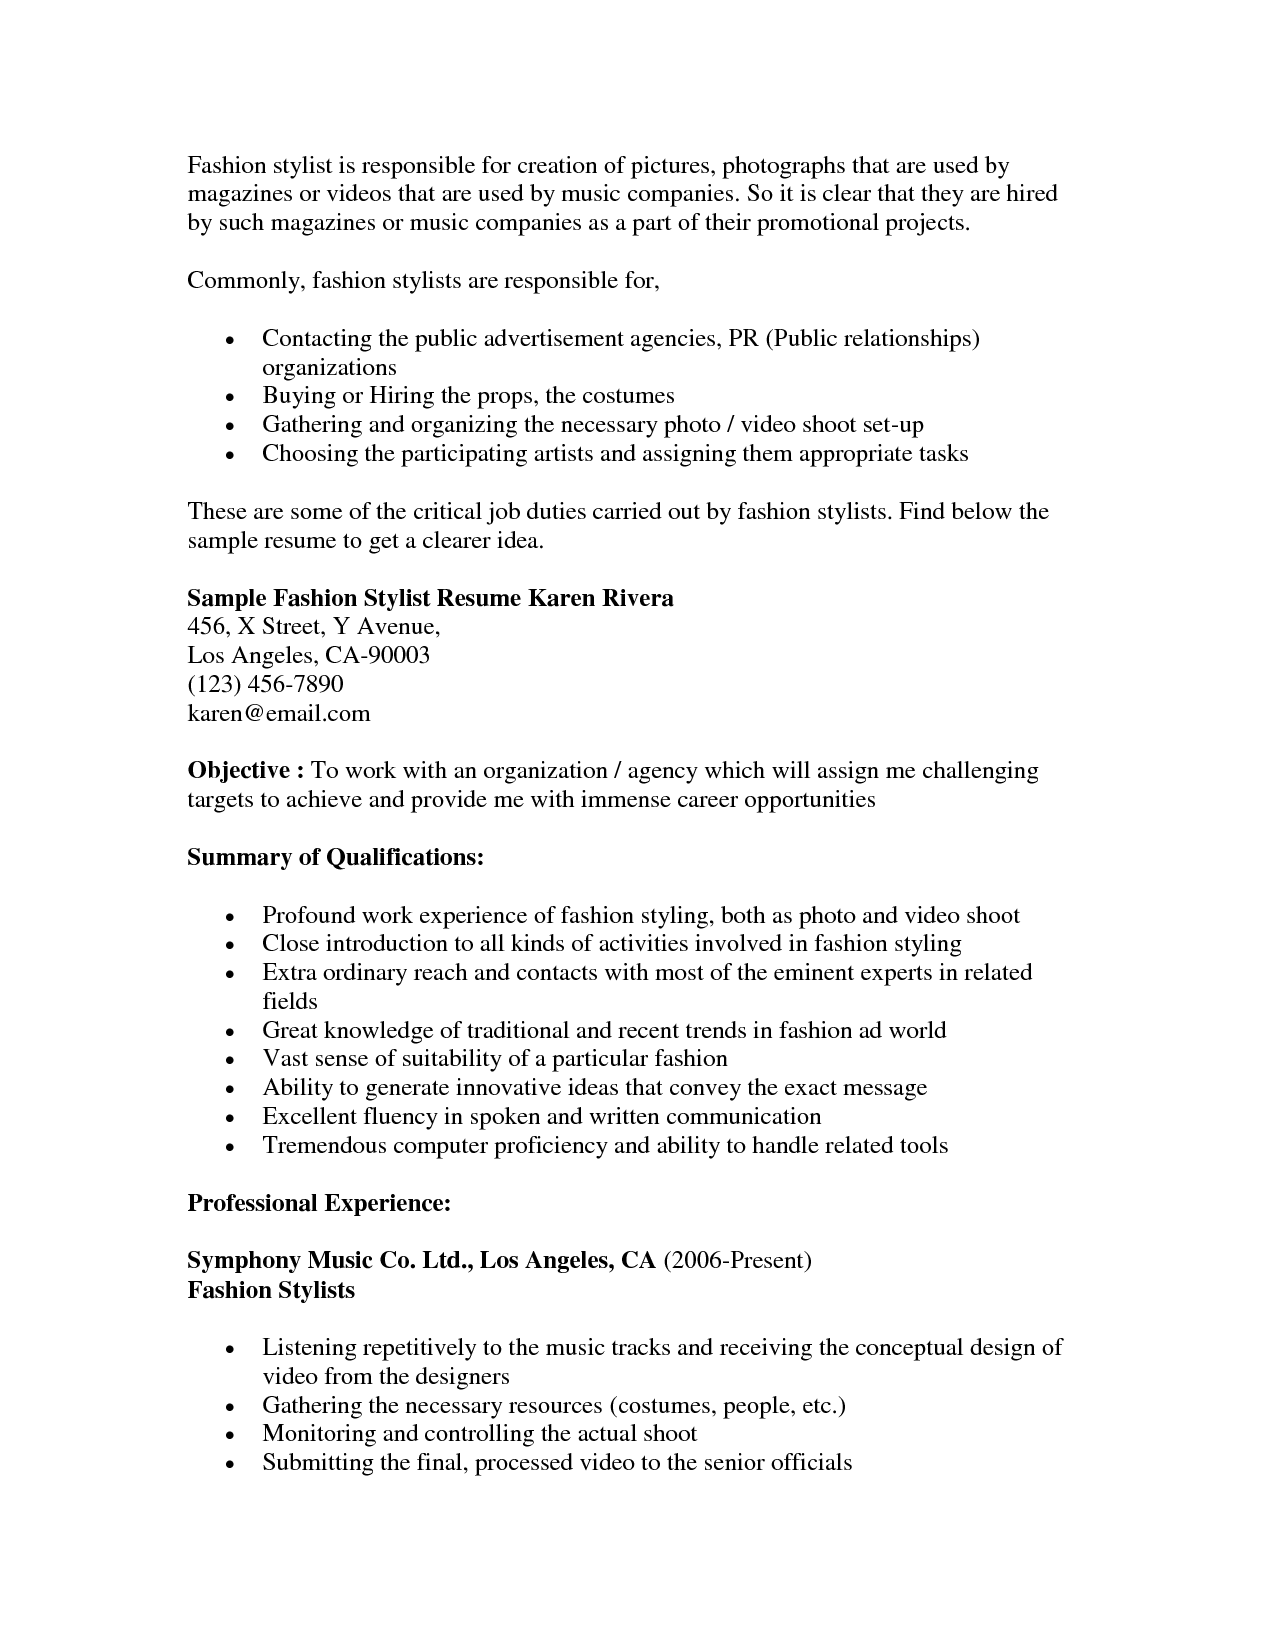 Fashion Stylist Resume Objective   Http://www.resumecareer.info/fashion Regarding Hair Stylist Resume Objective